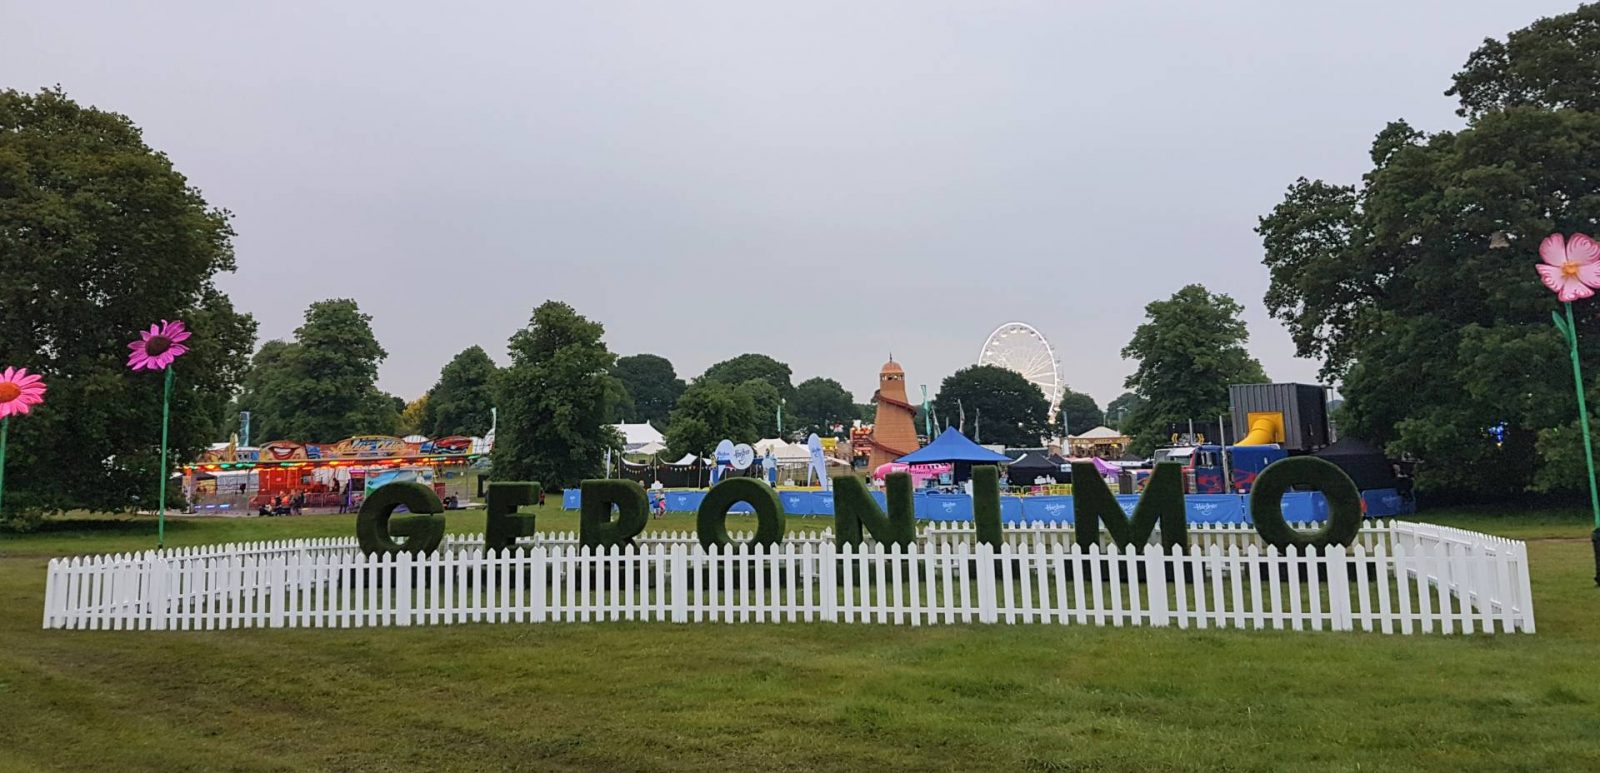 Geronimo Festival 2018 at Arley Hall